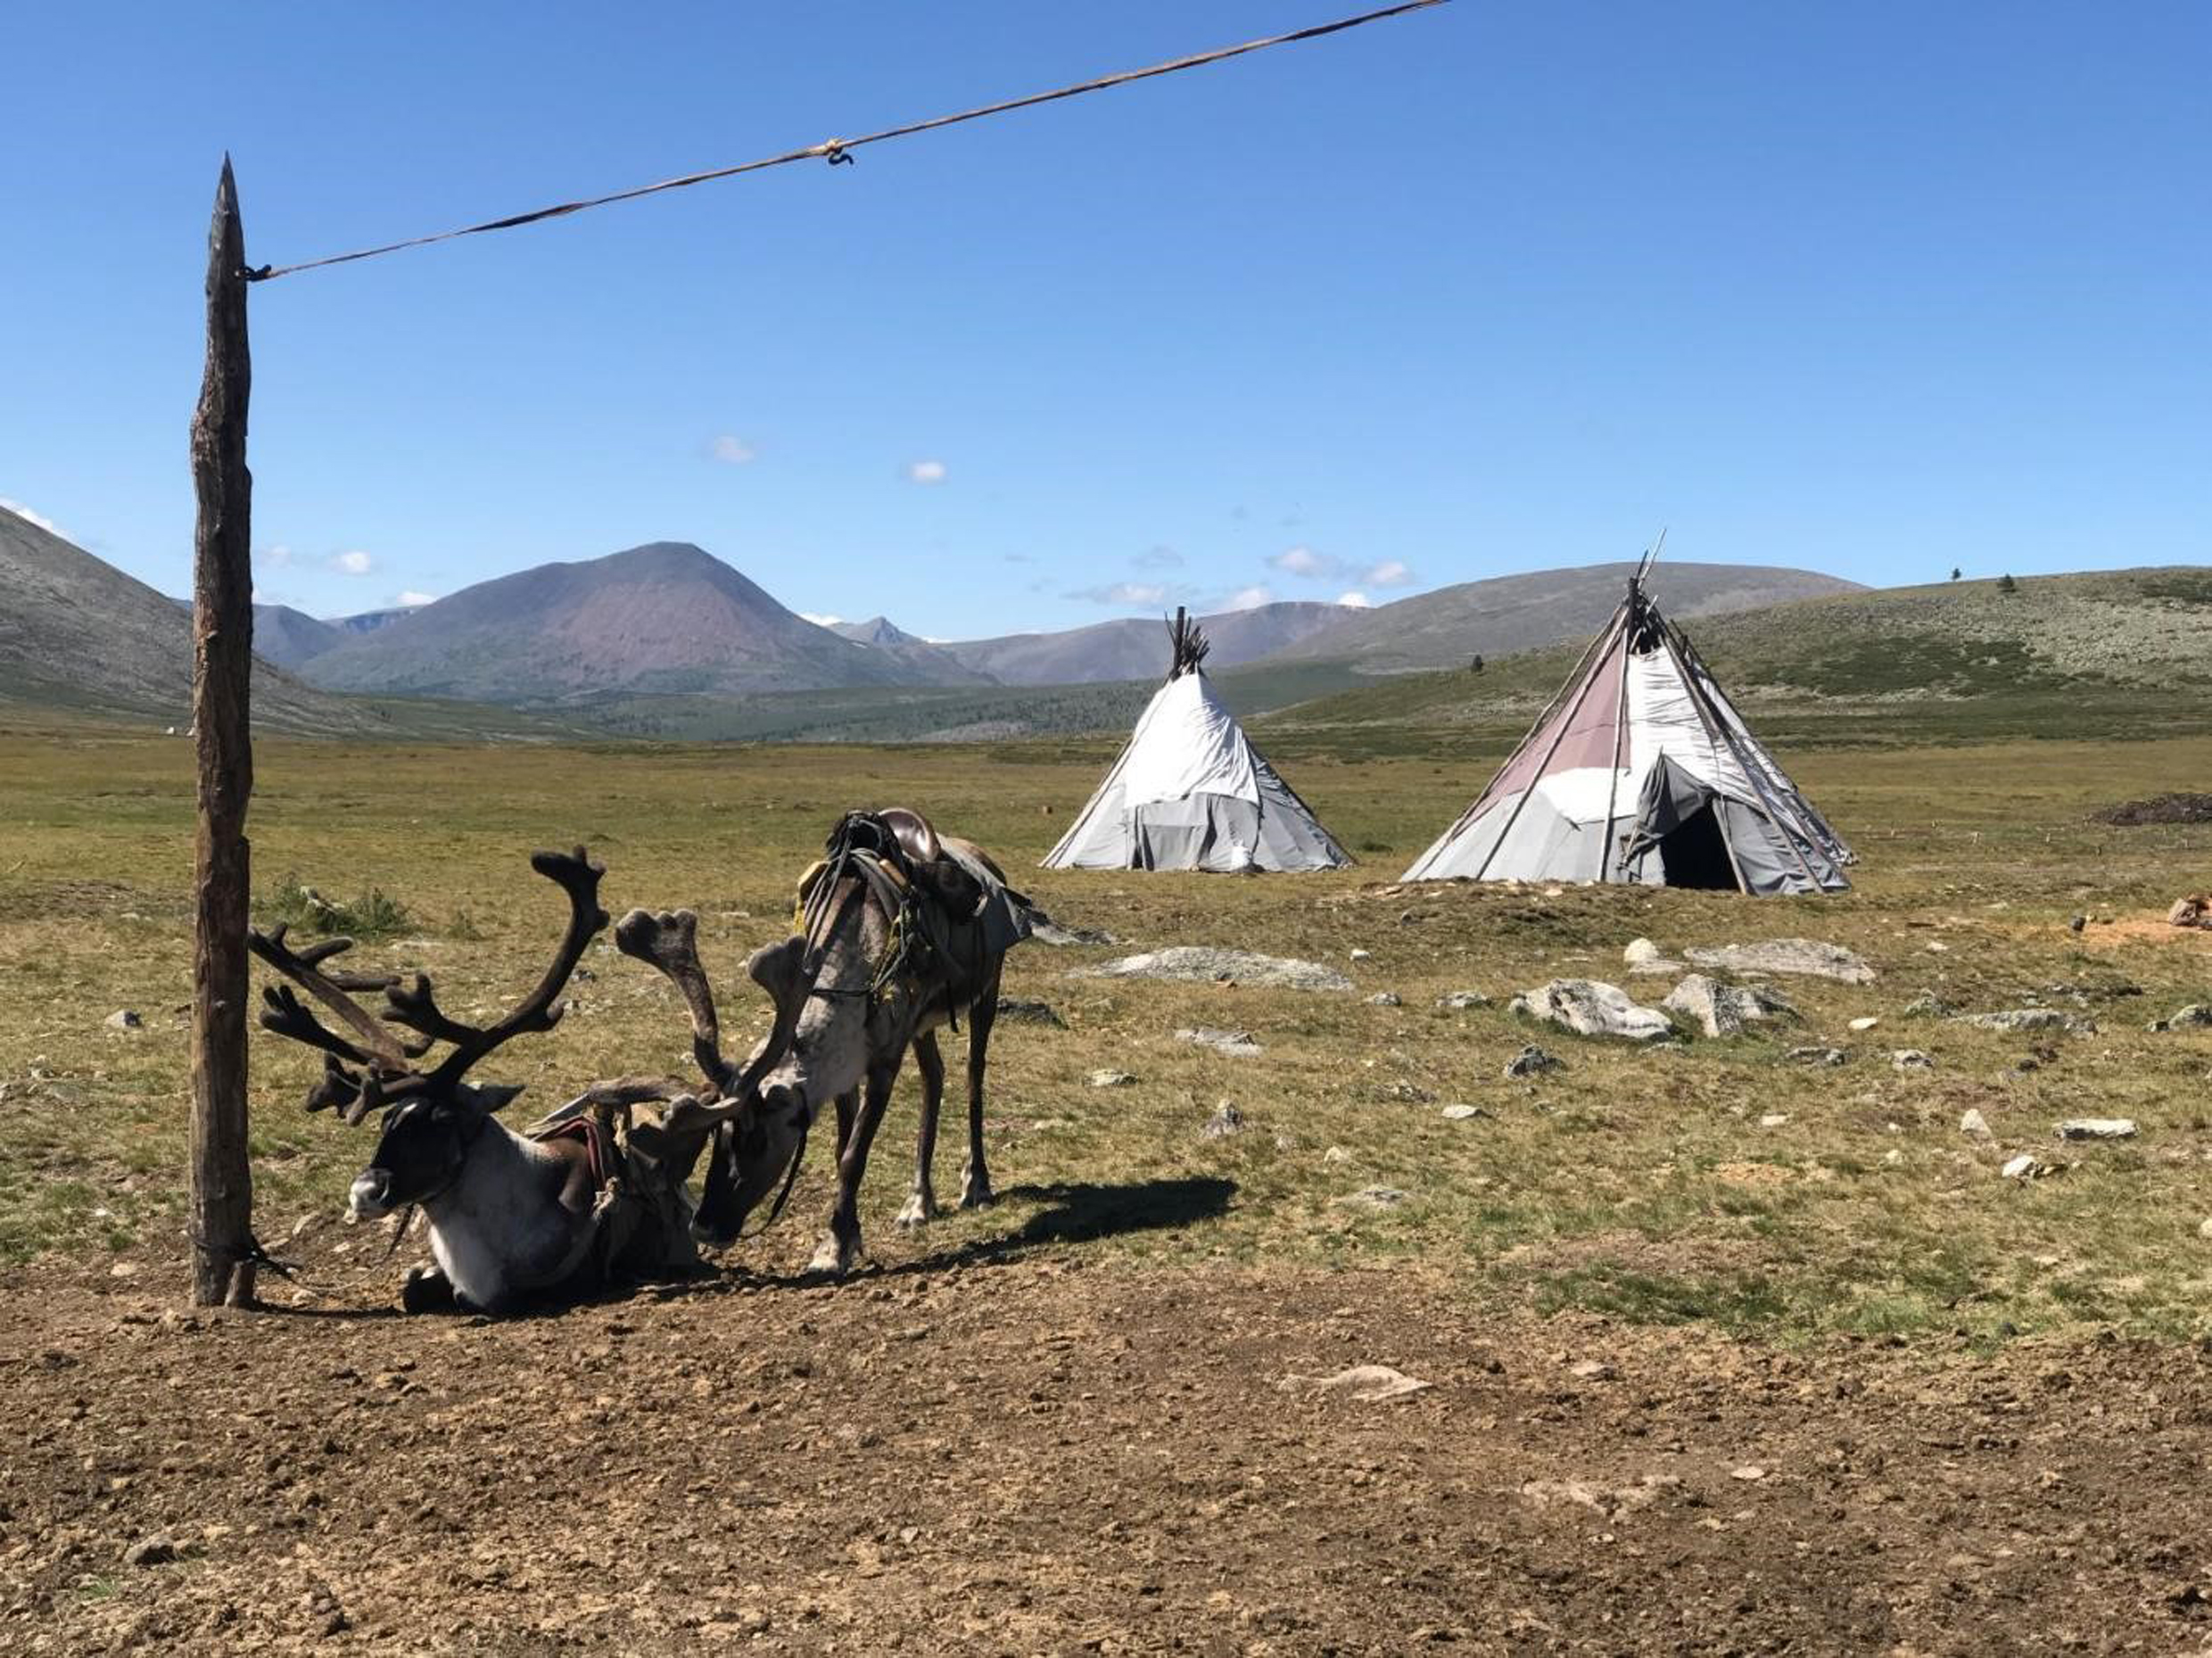 Domestic reindeer saddled for riding outside a Tsaatan summer camp in Khuvsgul province.